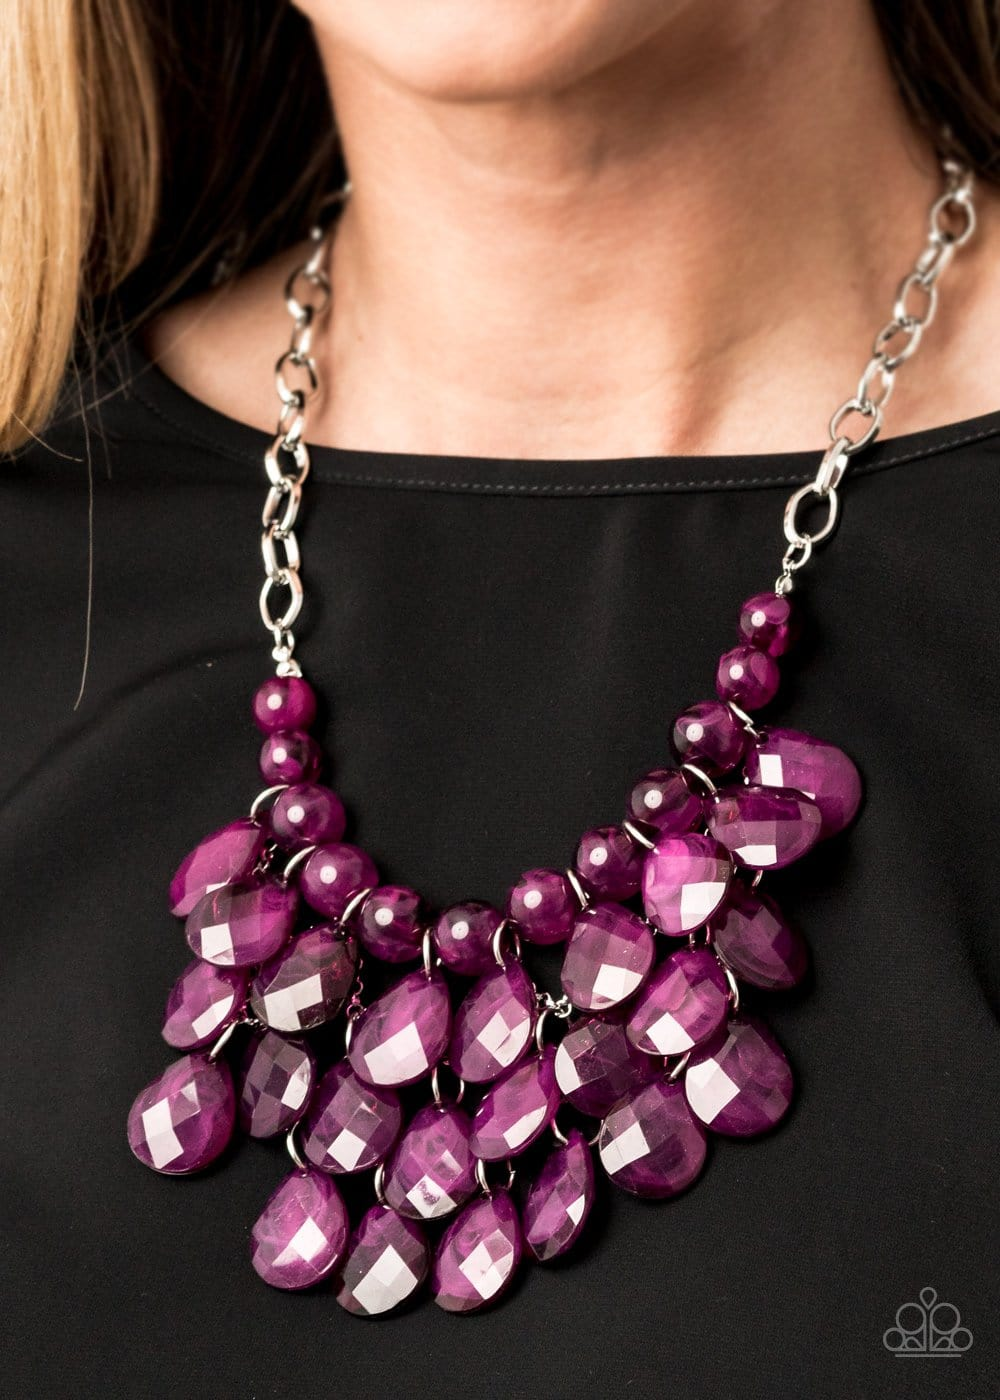 Paparazzi: Sorry To Burst Your Bubble - Purple/Plum Necklace - Jewels N' Thingz Boutique